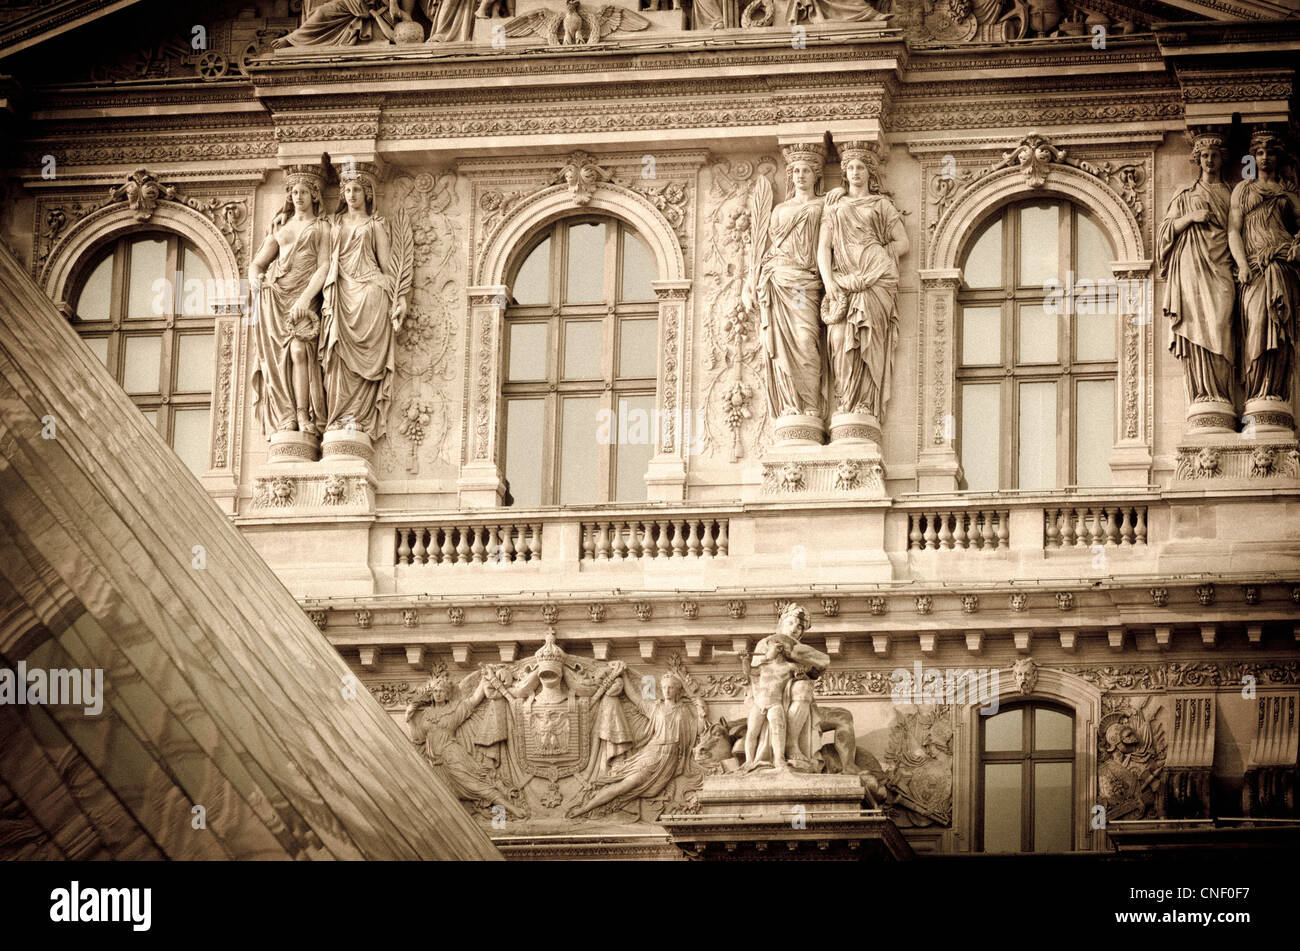 Louvre Palace and Pyramid detail, Louvre Museum, Paris, France - Stock Image